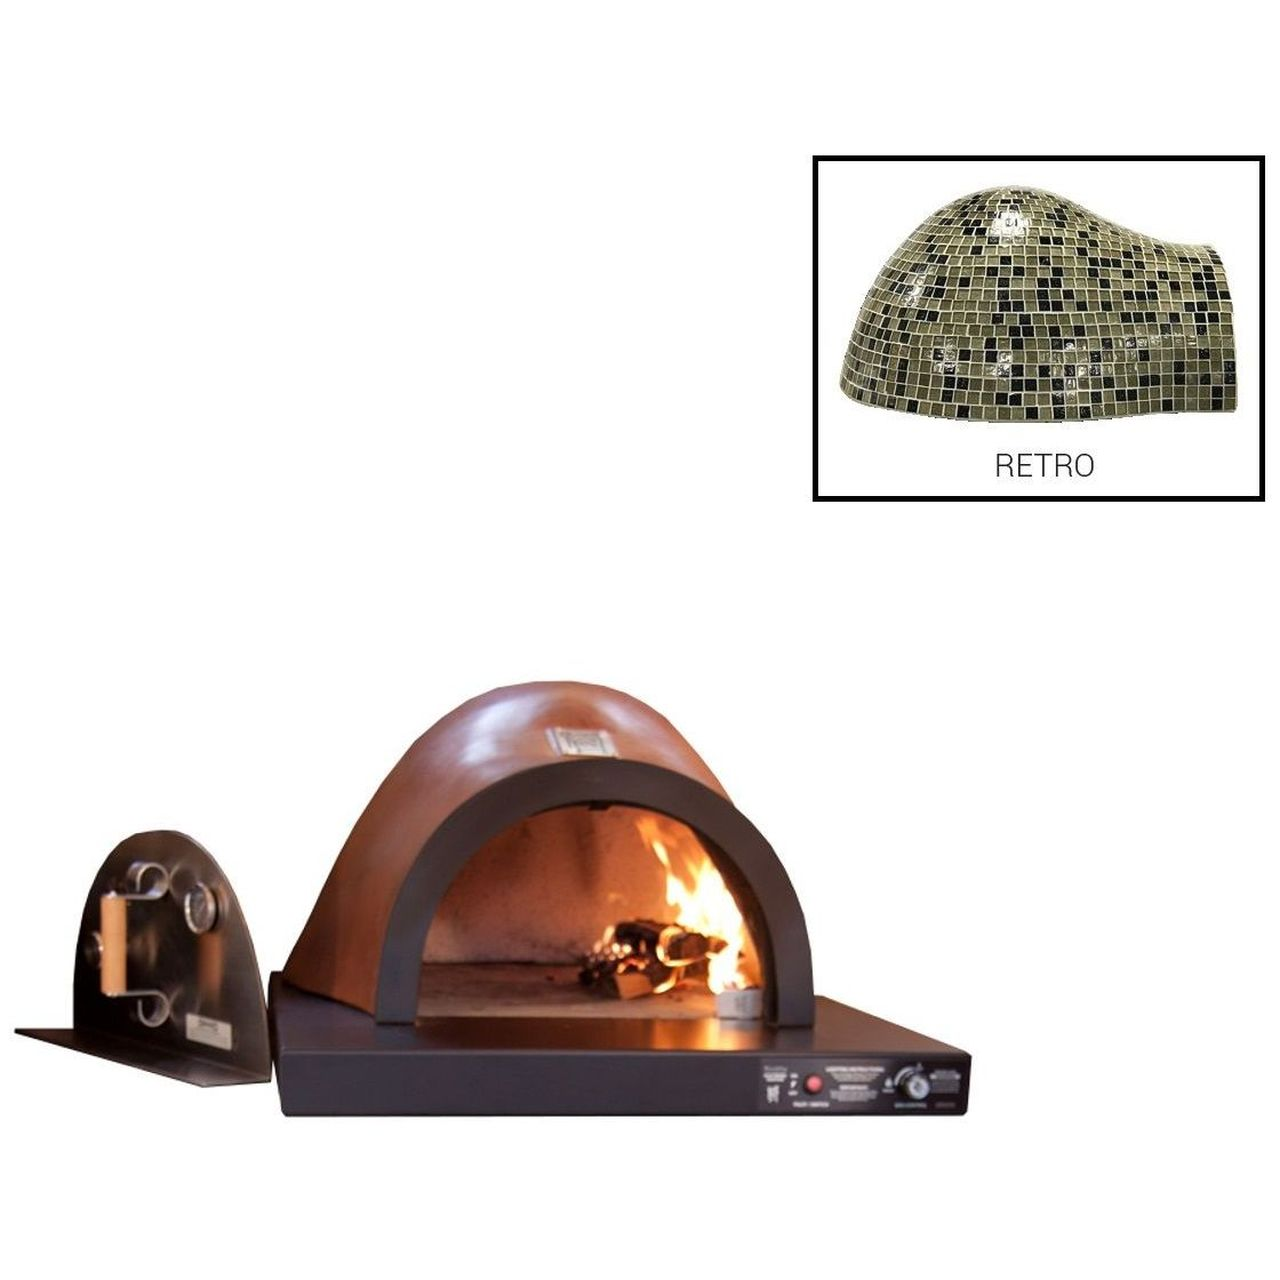 HPC Villa Hybrid Gas/Wood Oven With EI in Retro - NG